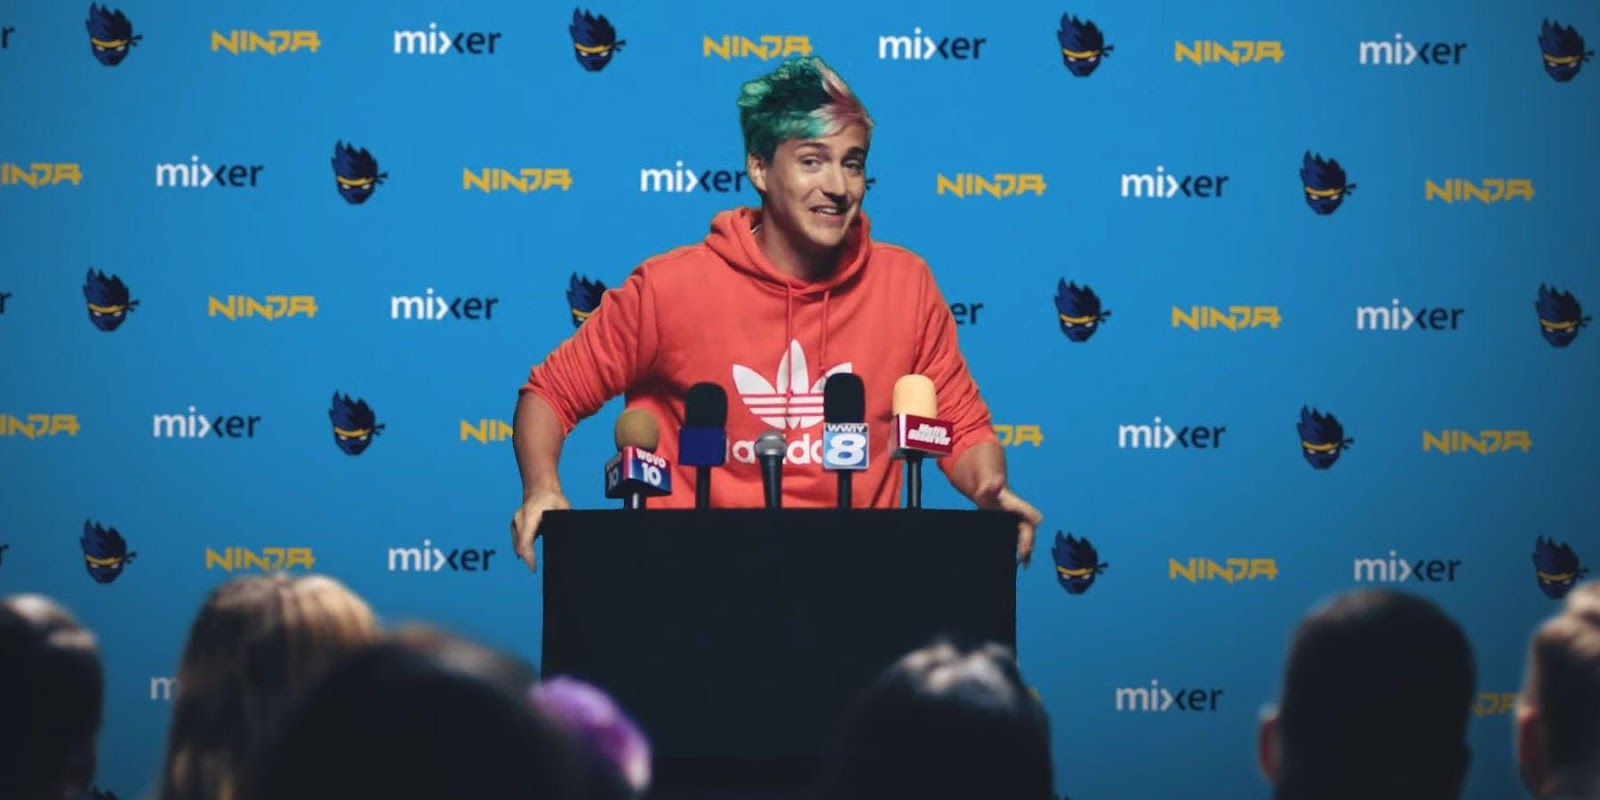 Image result for Ninja's first day on Mixer